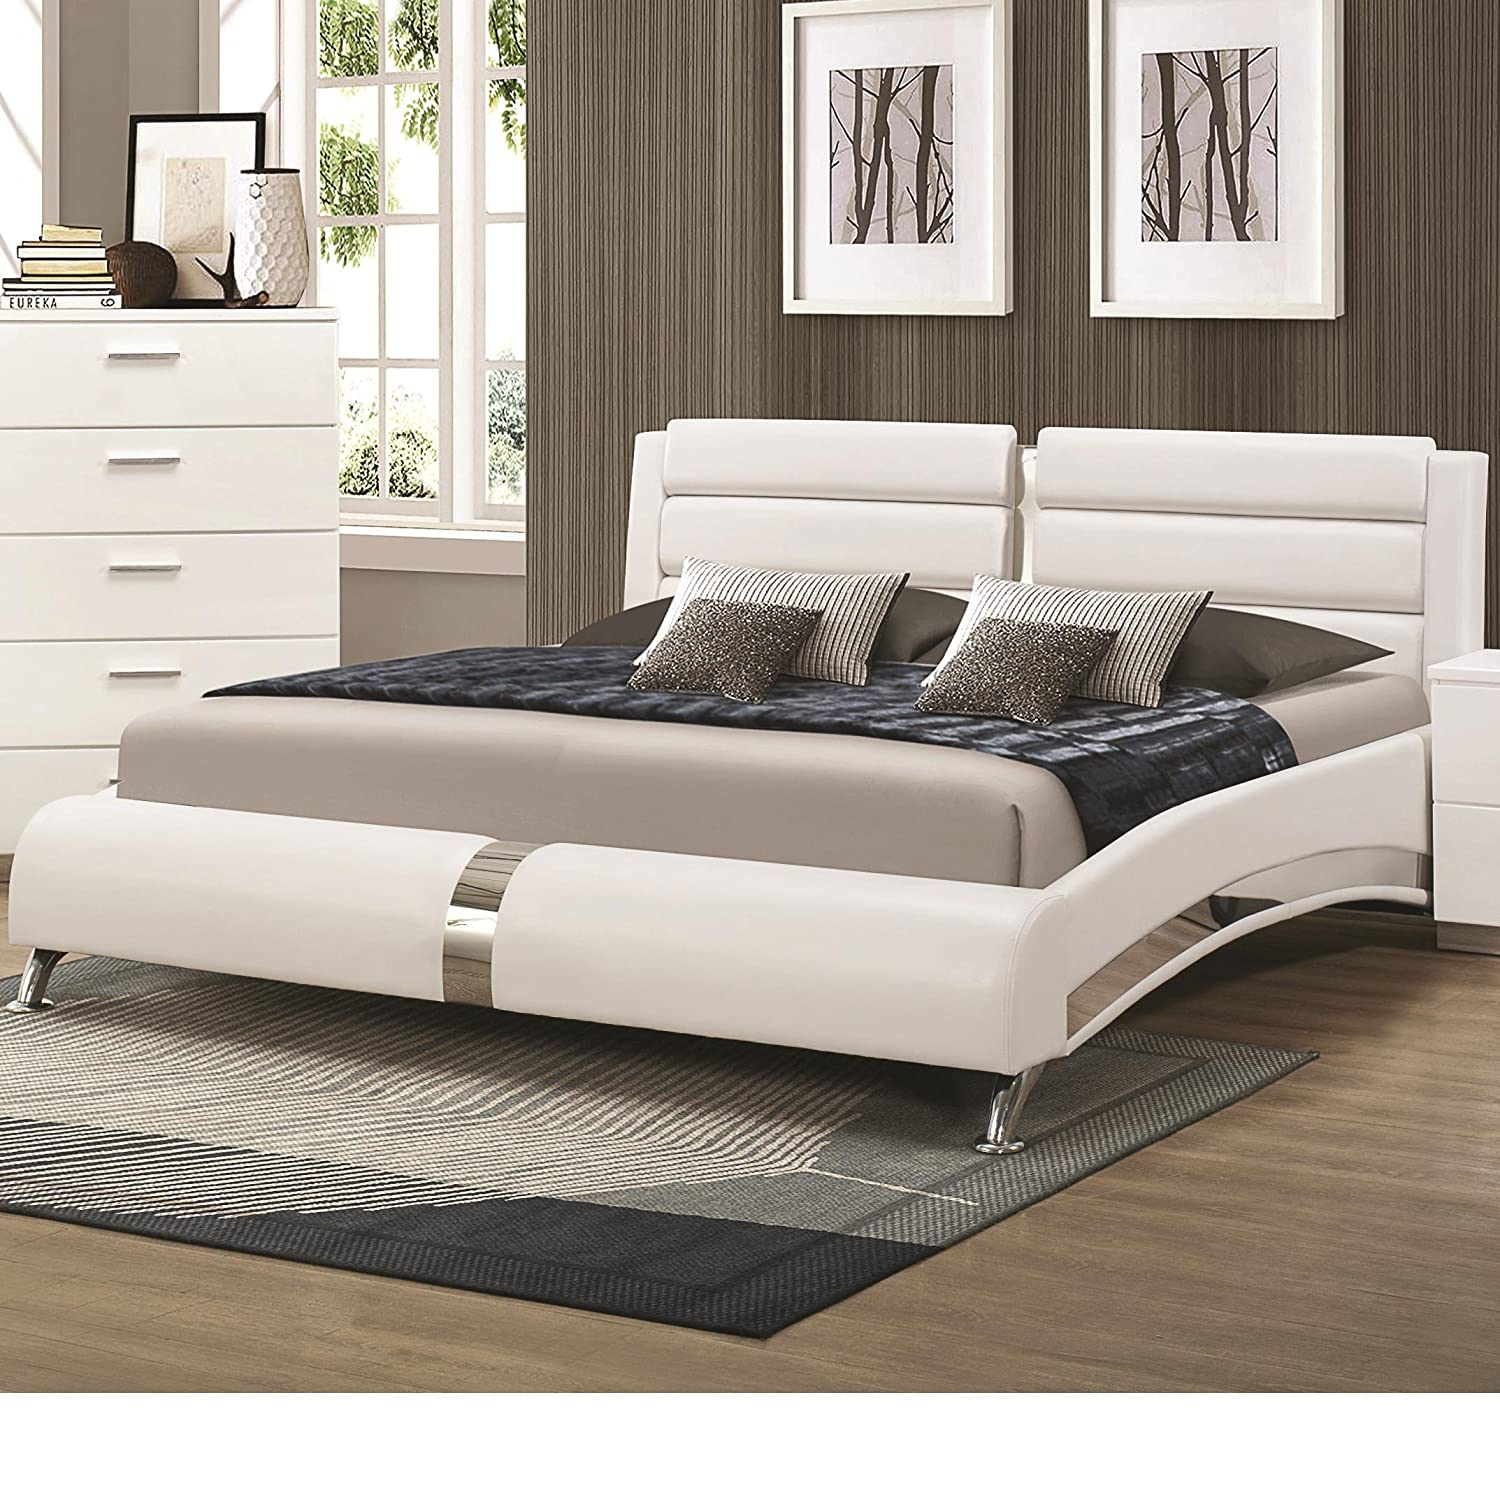 knot red diamond cal item platform king madisonwhckbed low bed beds products sofa madison number